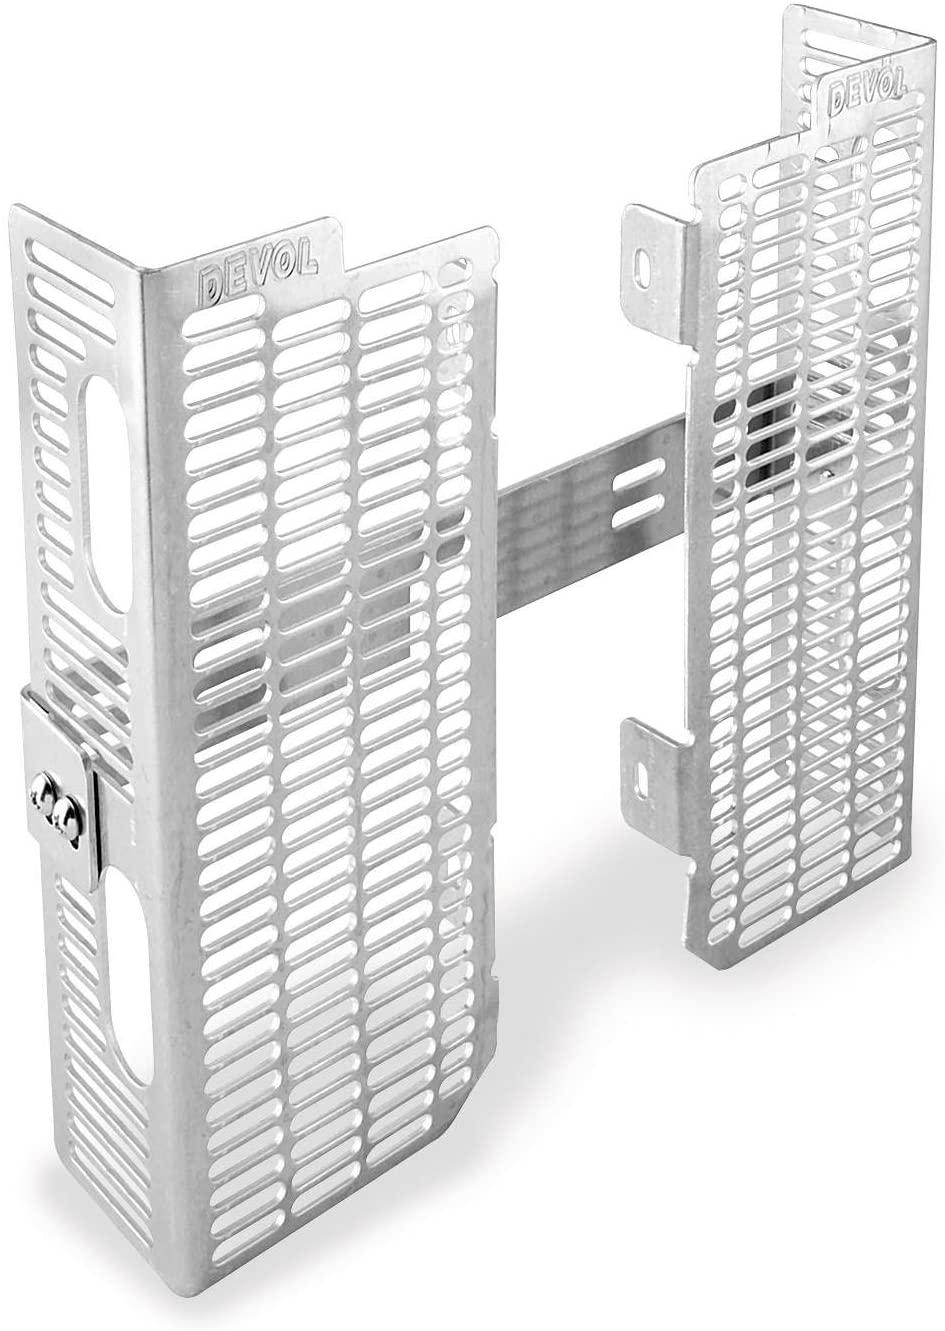 Devol 0101-2511 Radiator Guards